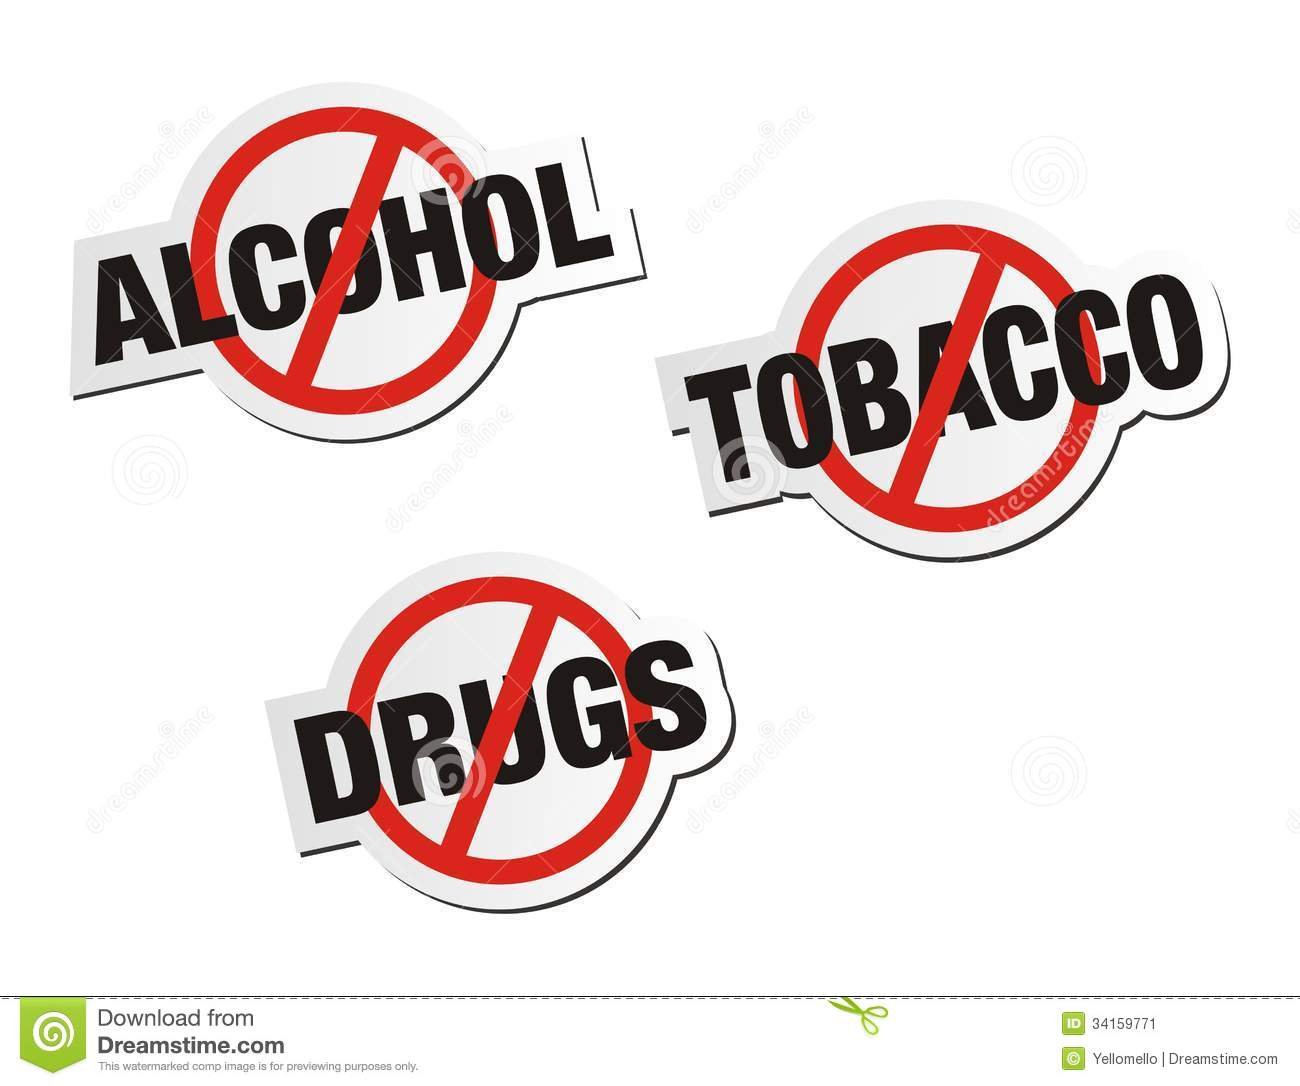 alcohol tobacco vs illegal drugs Other things, like alcohol, cigarettes, drugs, and some medicines, can be harmful my upmc find a doctor careers tobacco smoke contains nicotine, arsenic, various tar products illegal drugs and pregnancy.